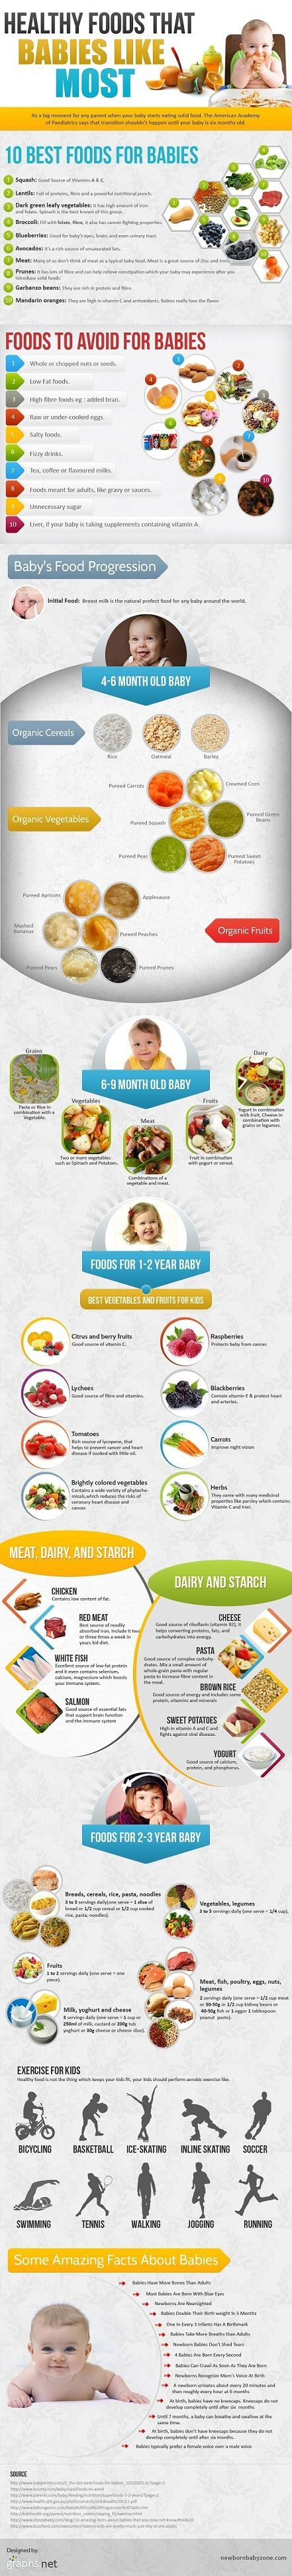 Healthy-Foods-That-Babies-Like-Most